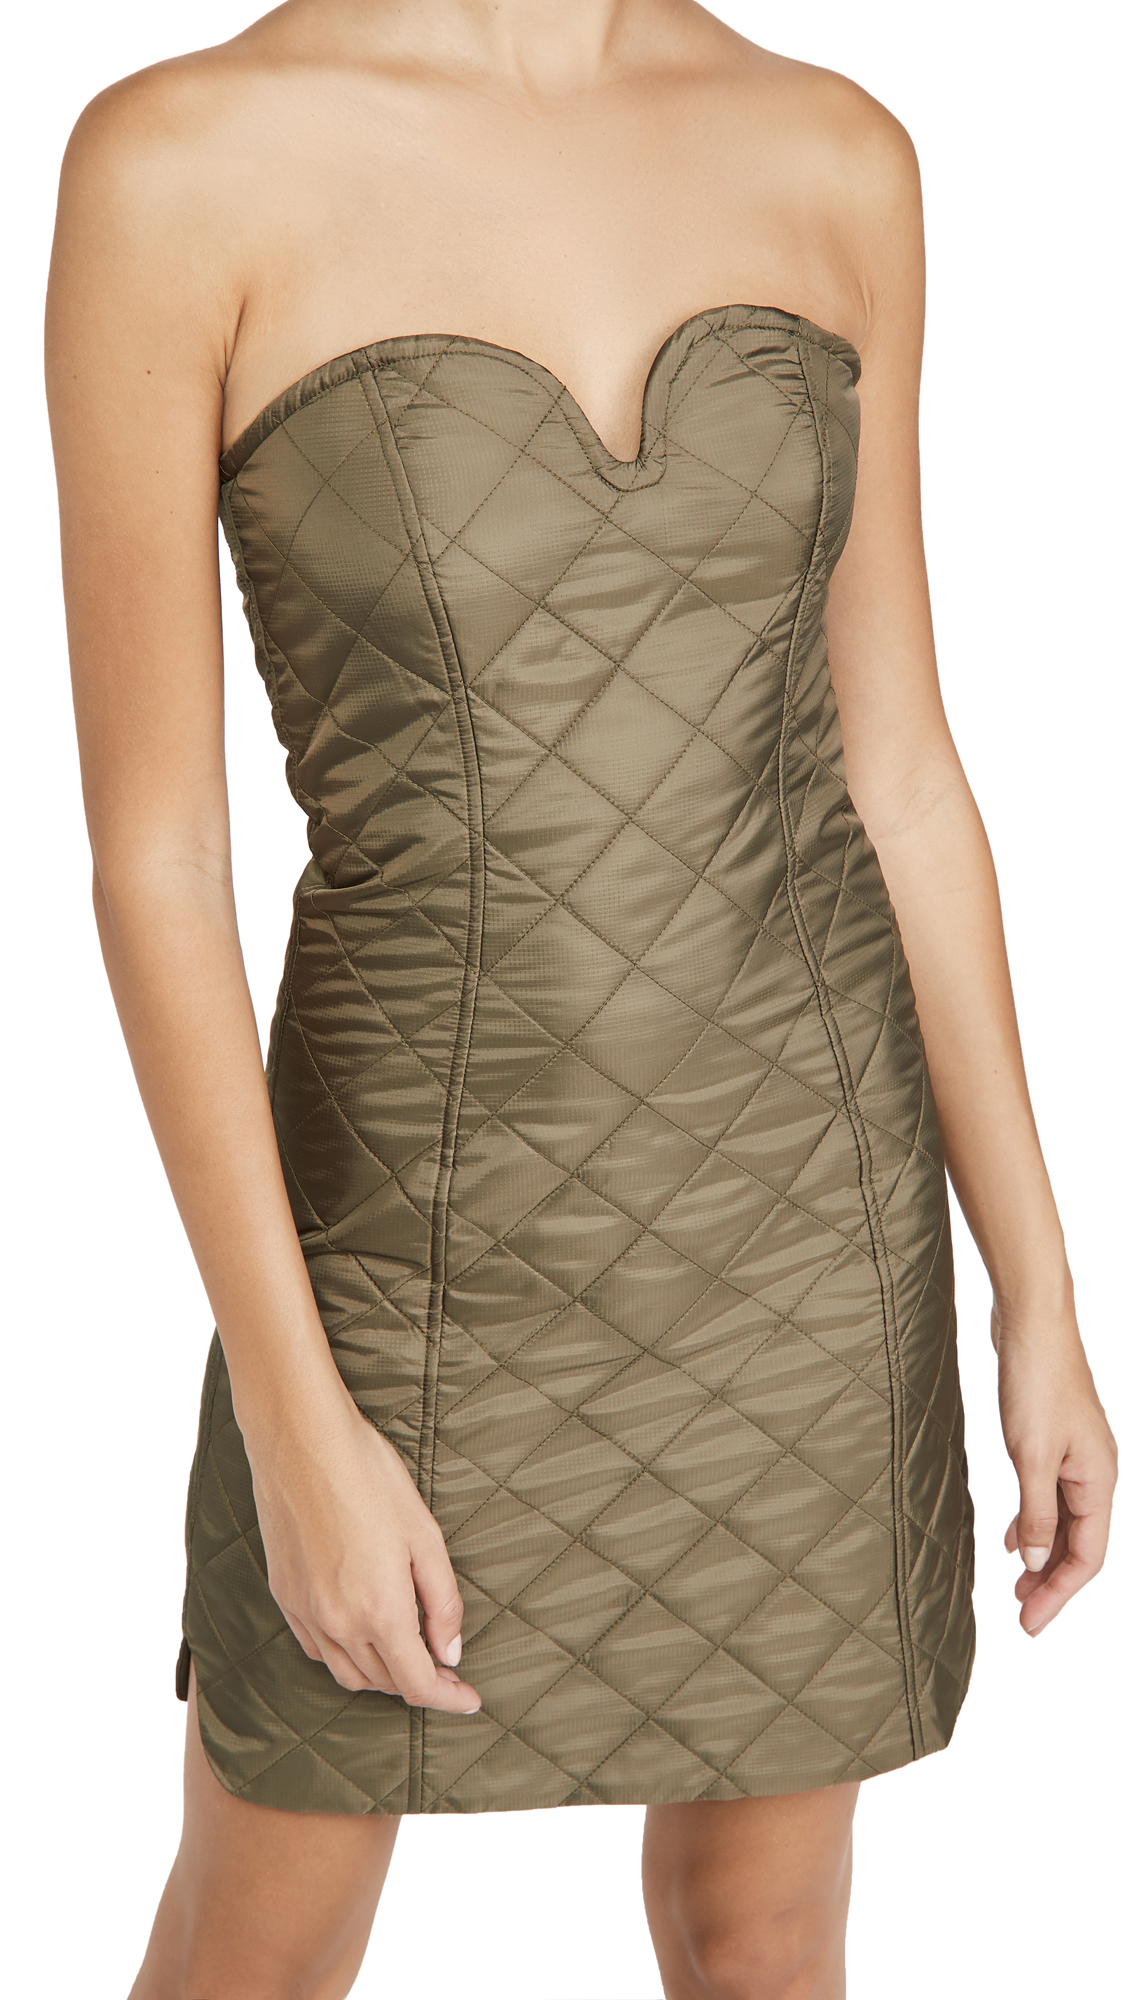 GANNI Recycled Ripstop Quilt Strapless Dress